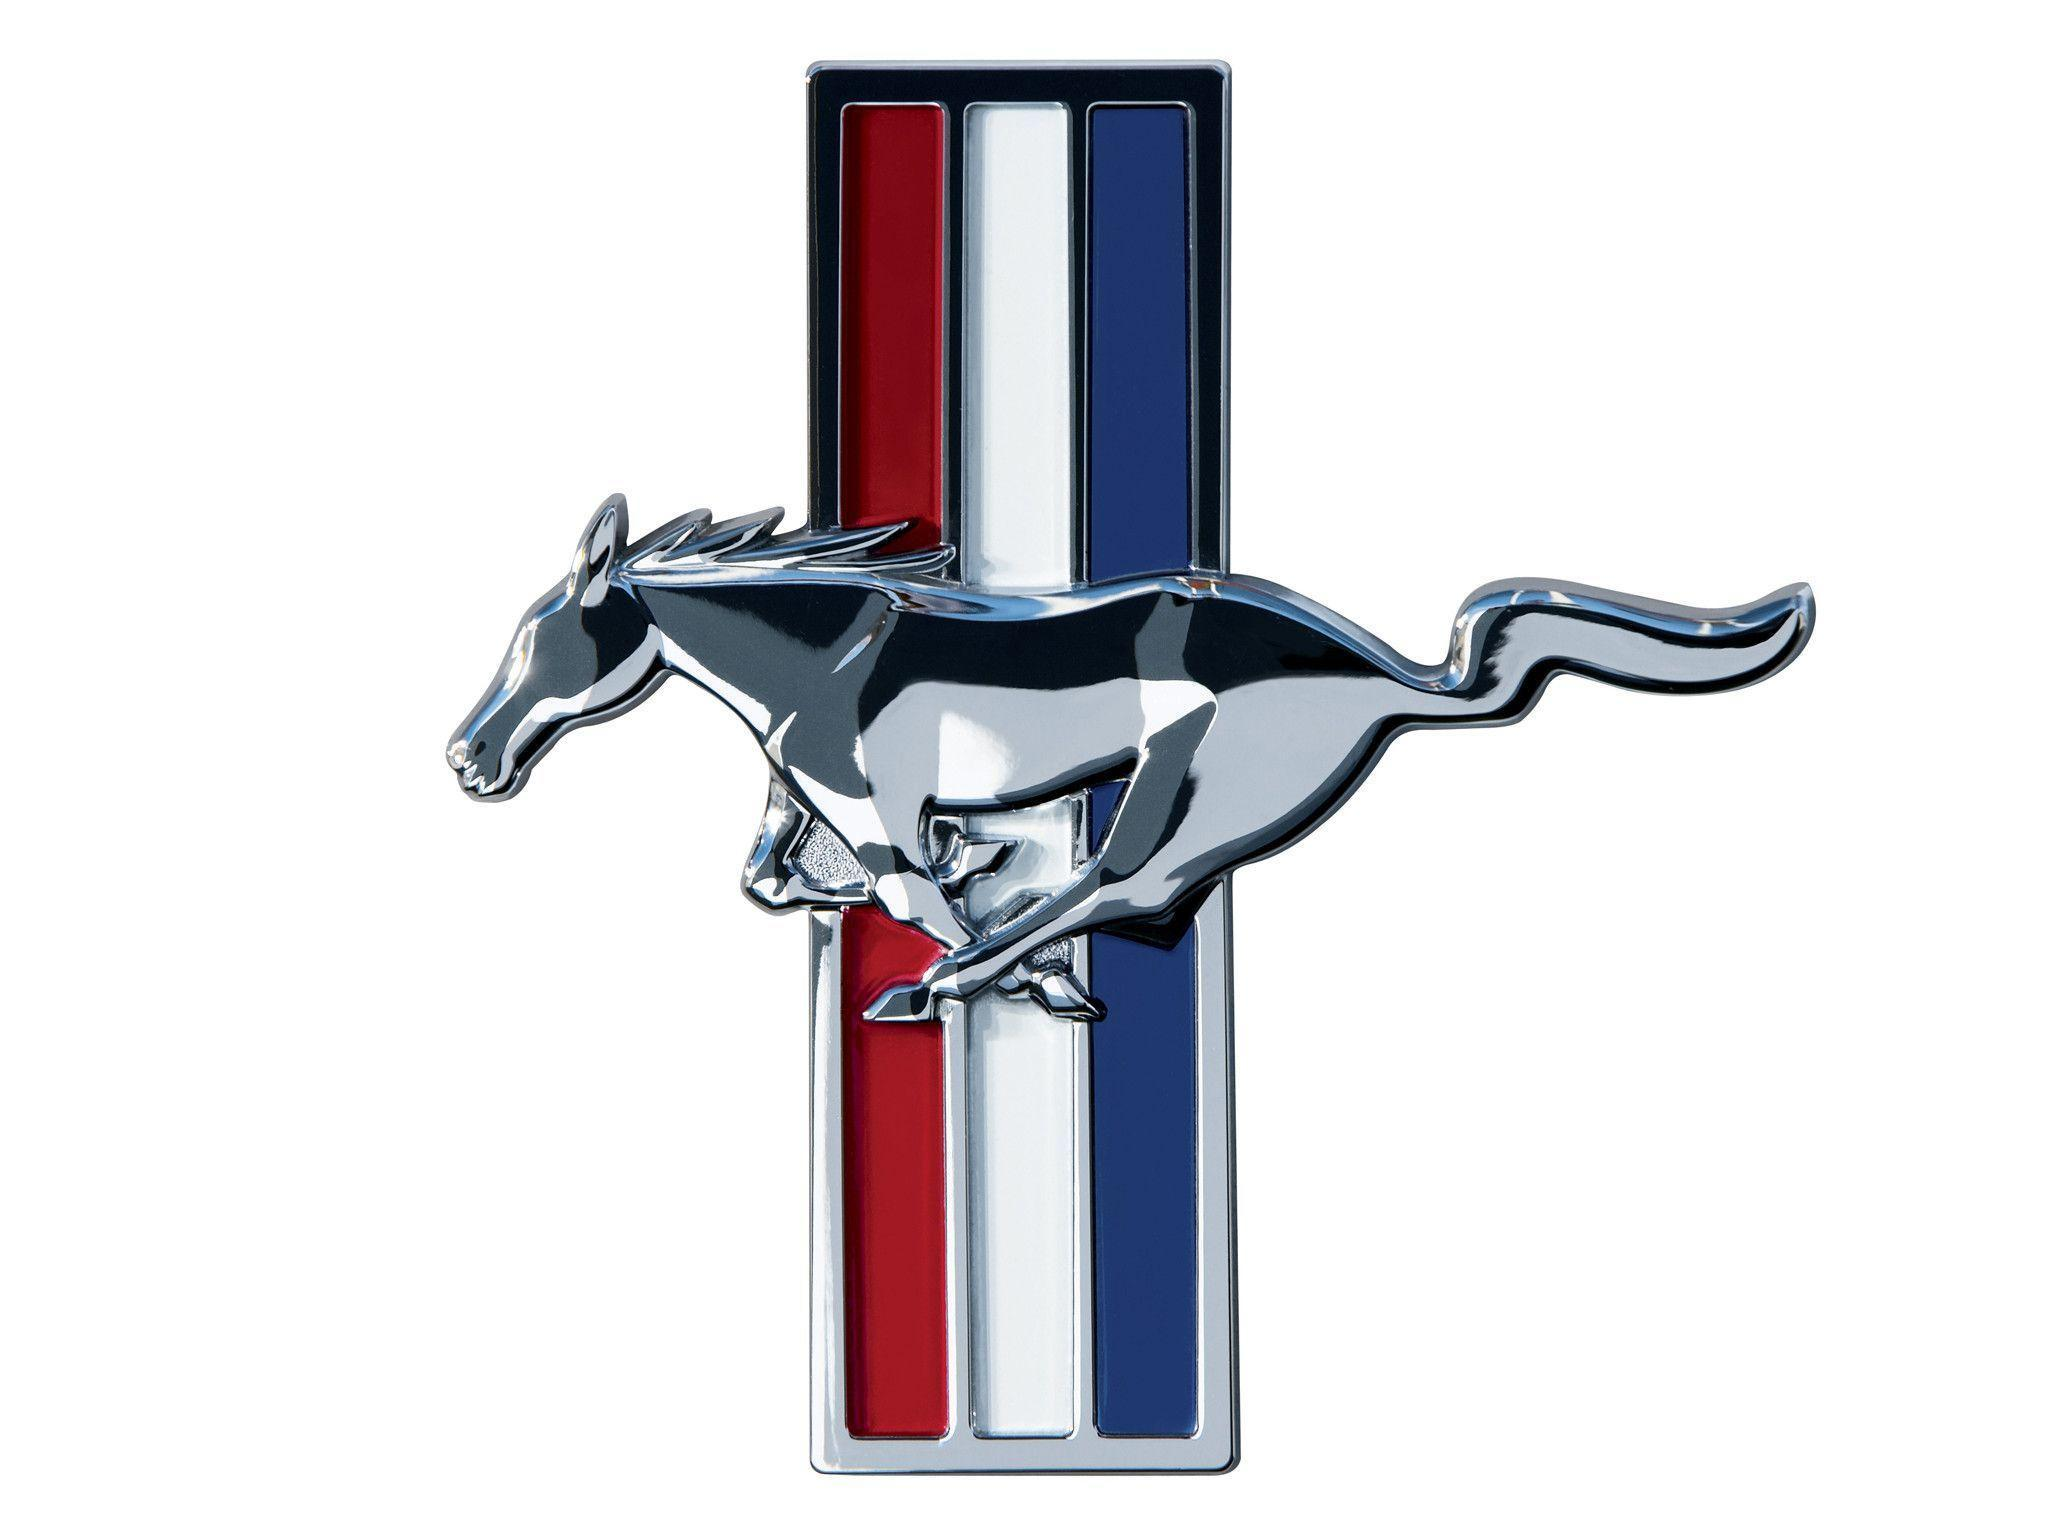 Ford Mustang Logo Wallpapers 2048x1536